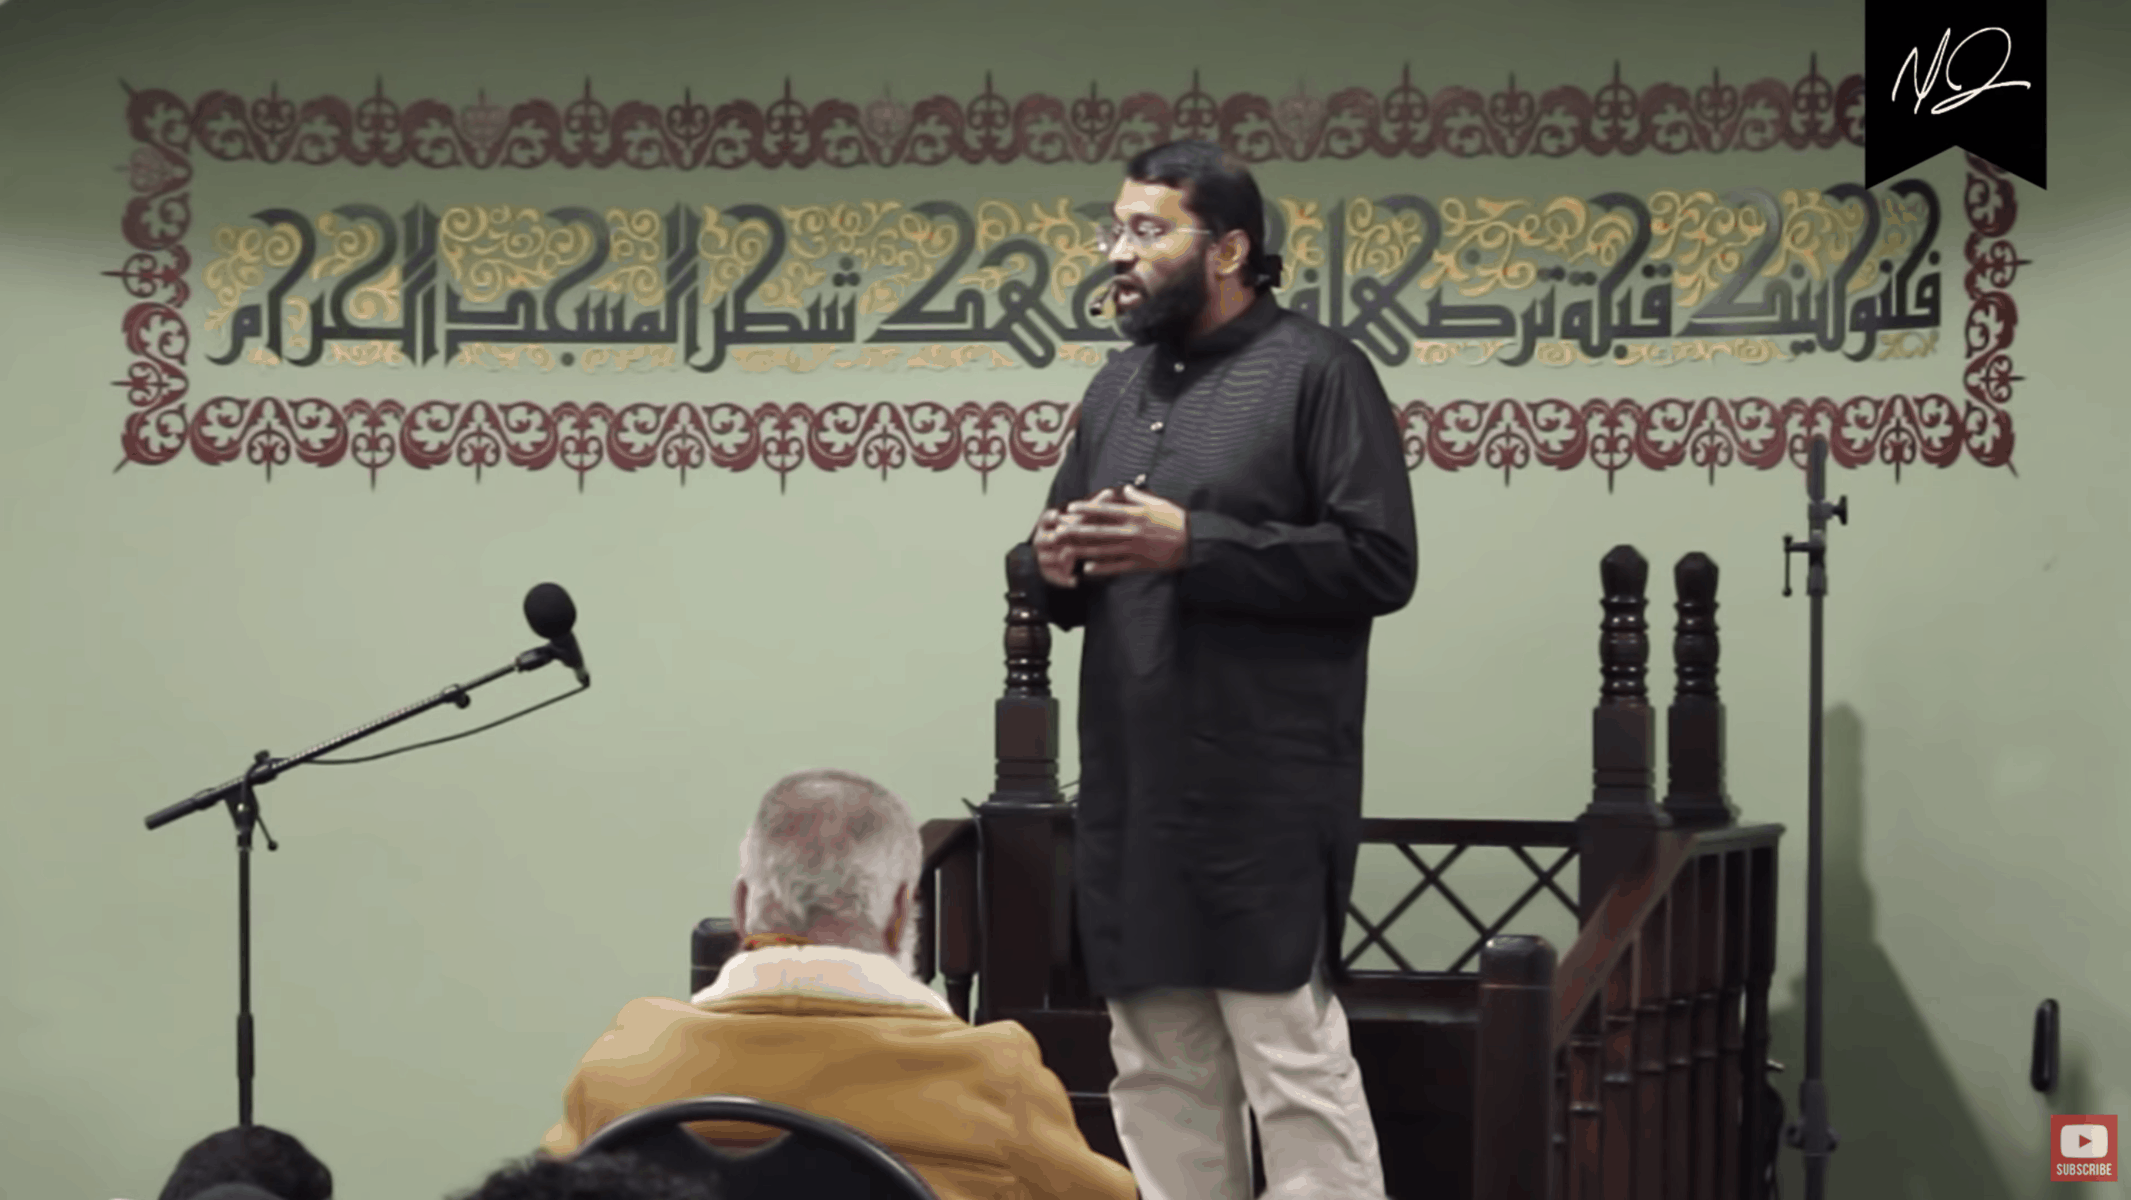 Yasir Qadhi – The Verse of Light